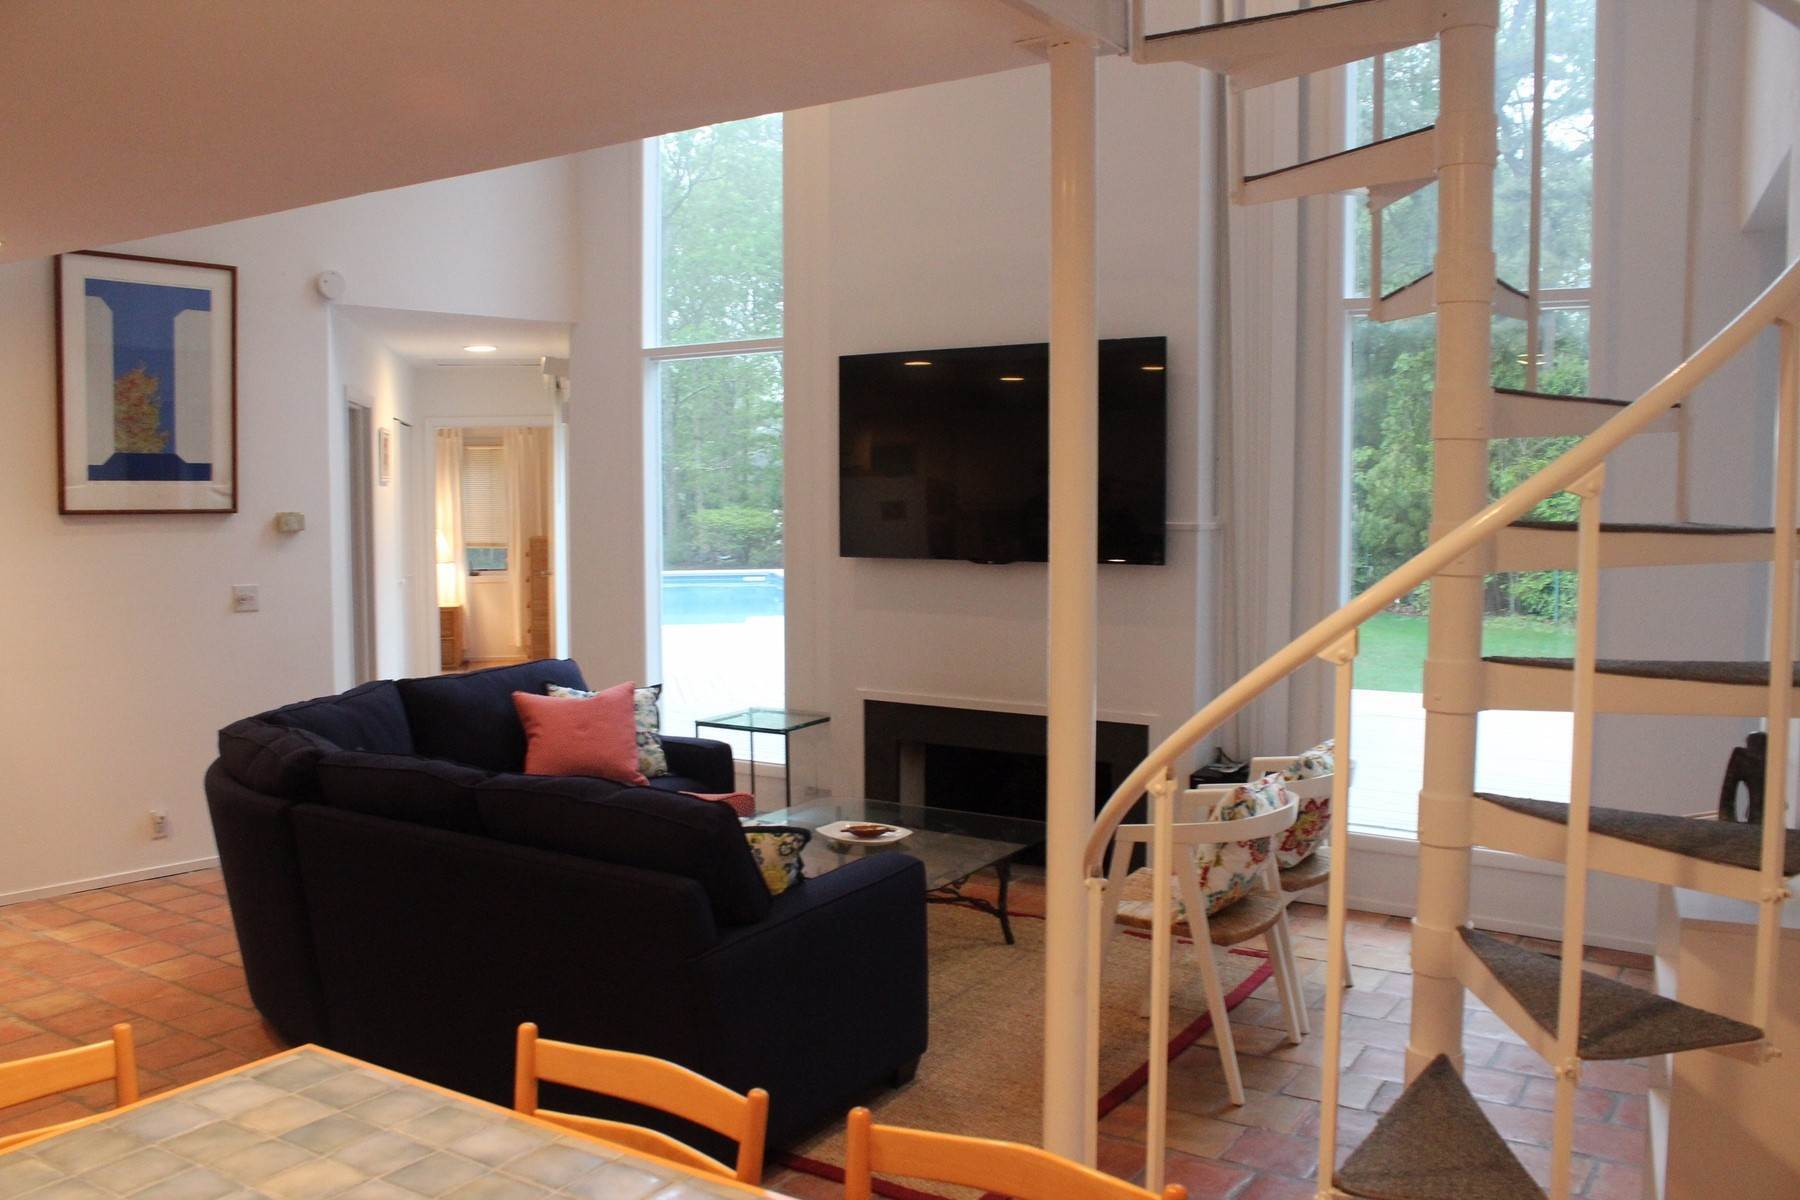 8. Single Family Home at Quogue 4 Bedroom Summer Rental With Pool Quogue Village, NY 11959